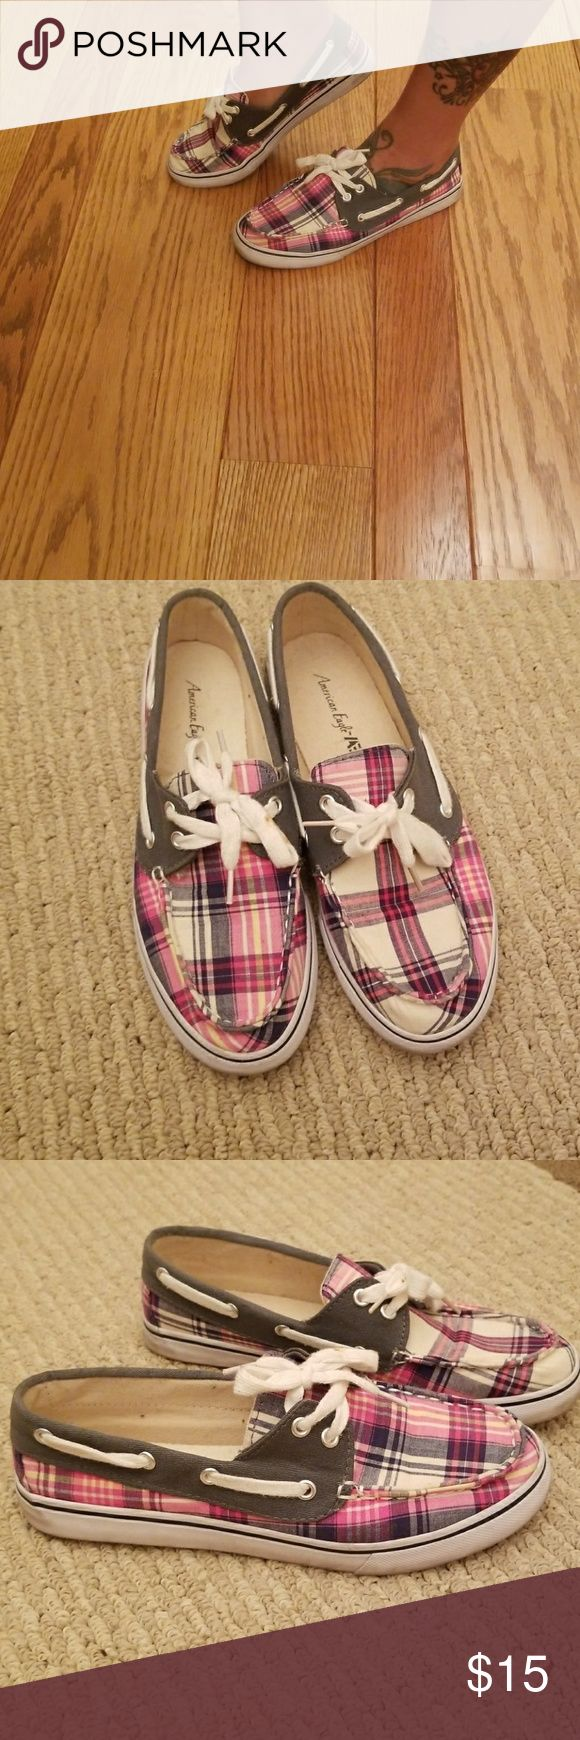 Boat shoes Pink, gray and beige American Eagle boat shoes american eagle Shoes Flats & Loafers